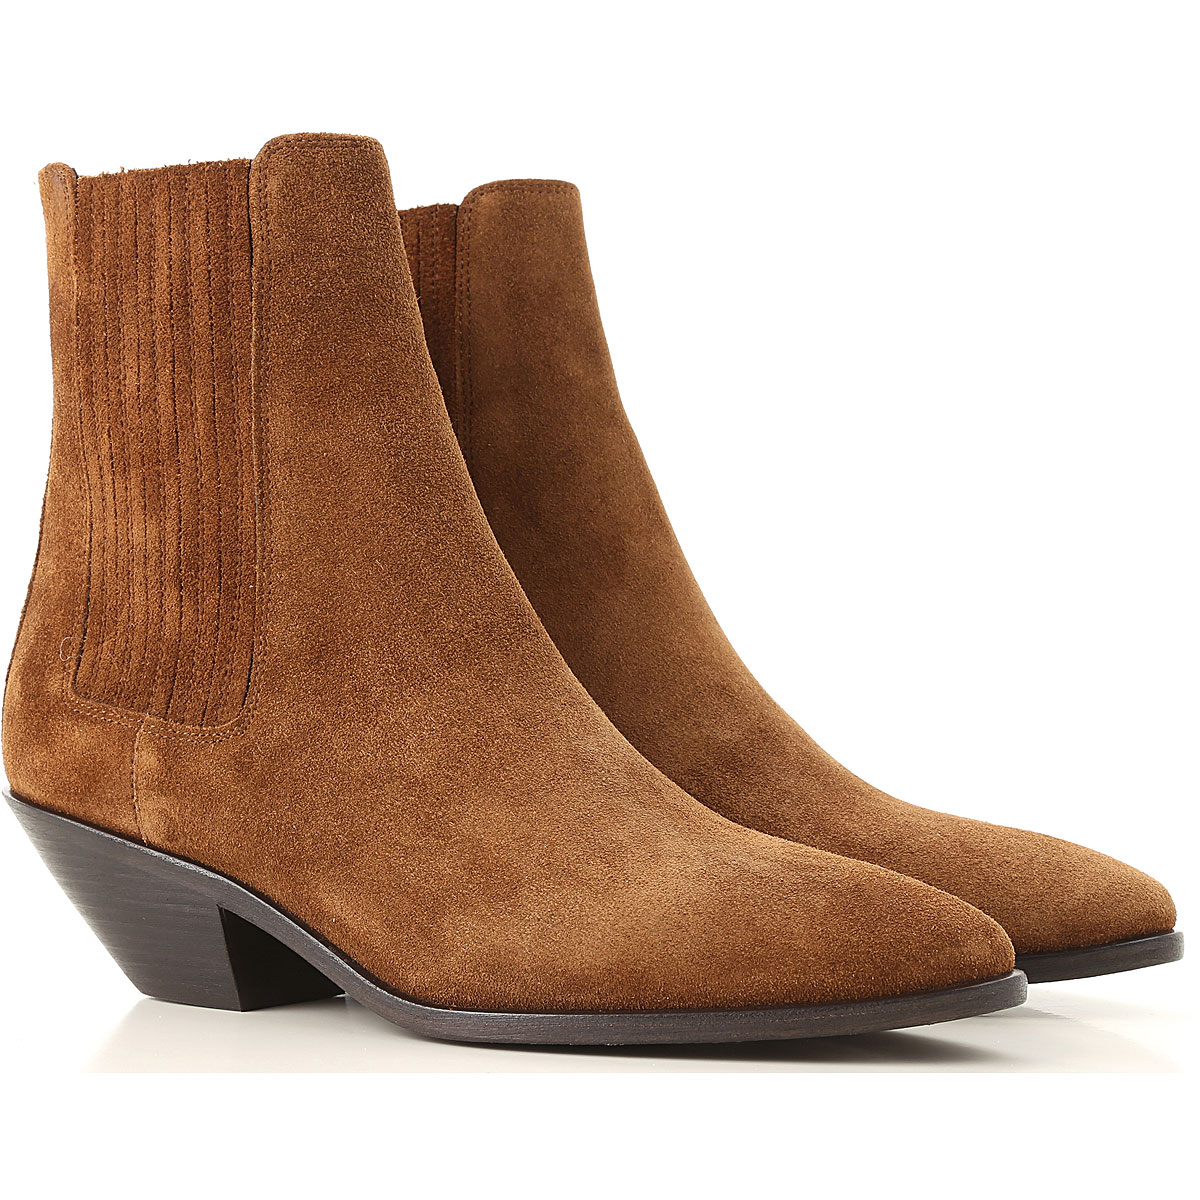 Yves Saint Laurent Chelsea Boots for Women Brown Canada - GOOFASH - Womens BOOTS